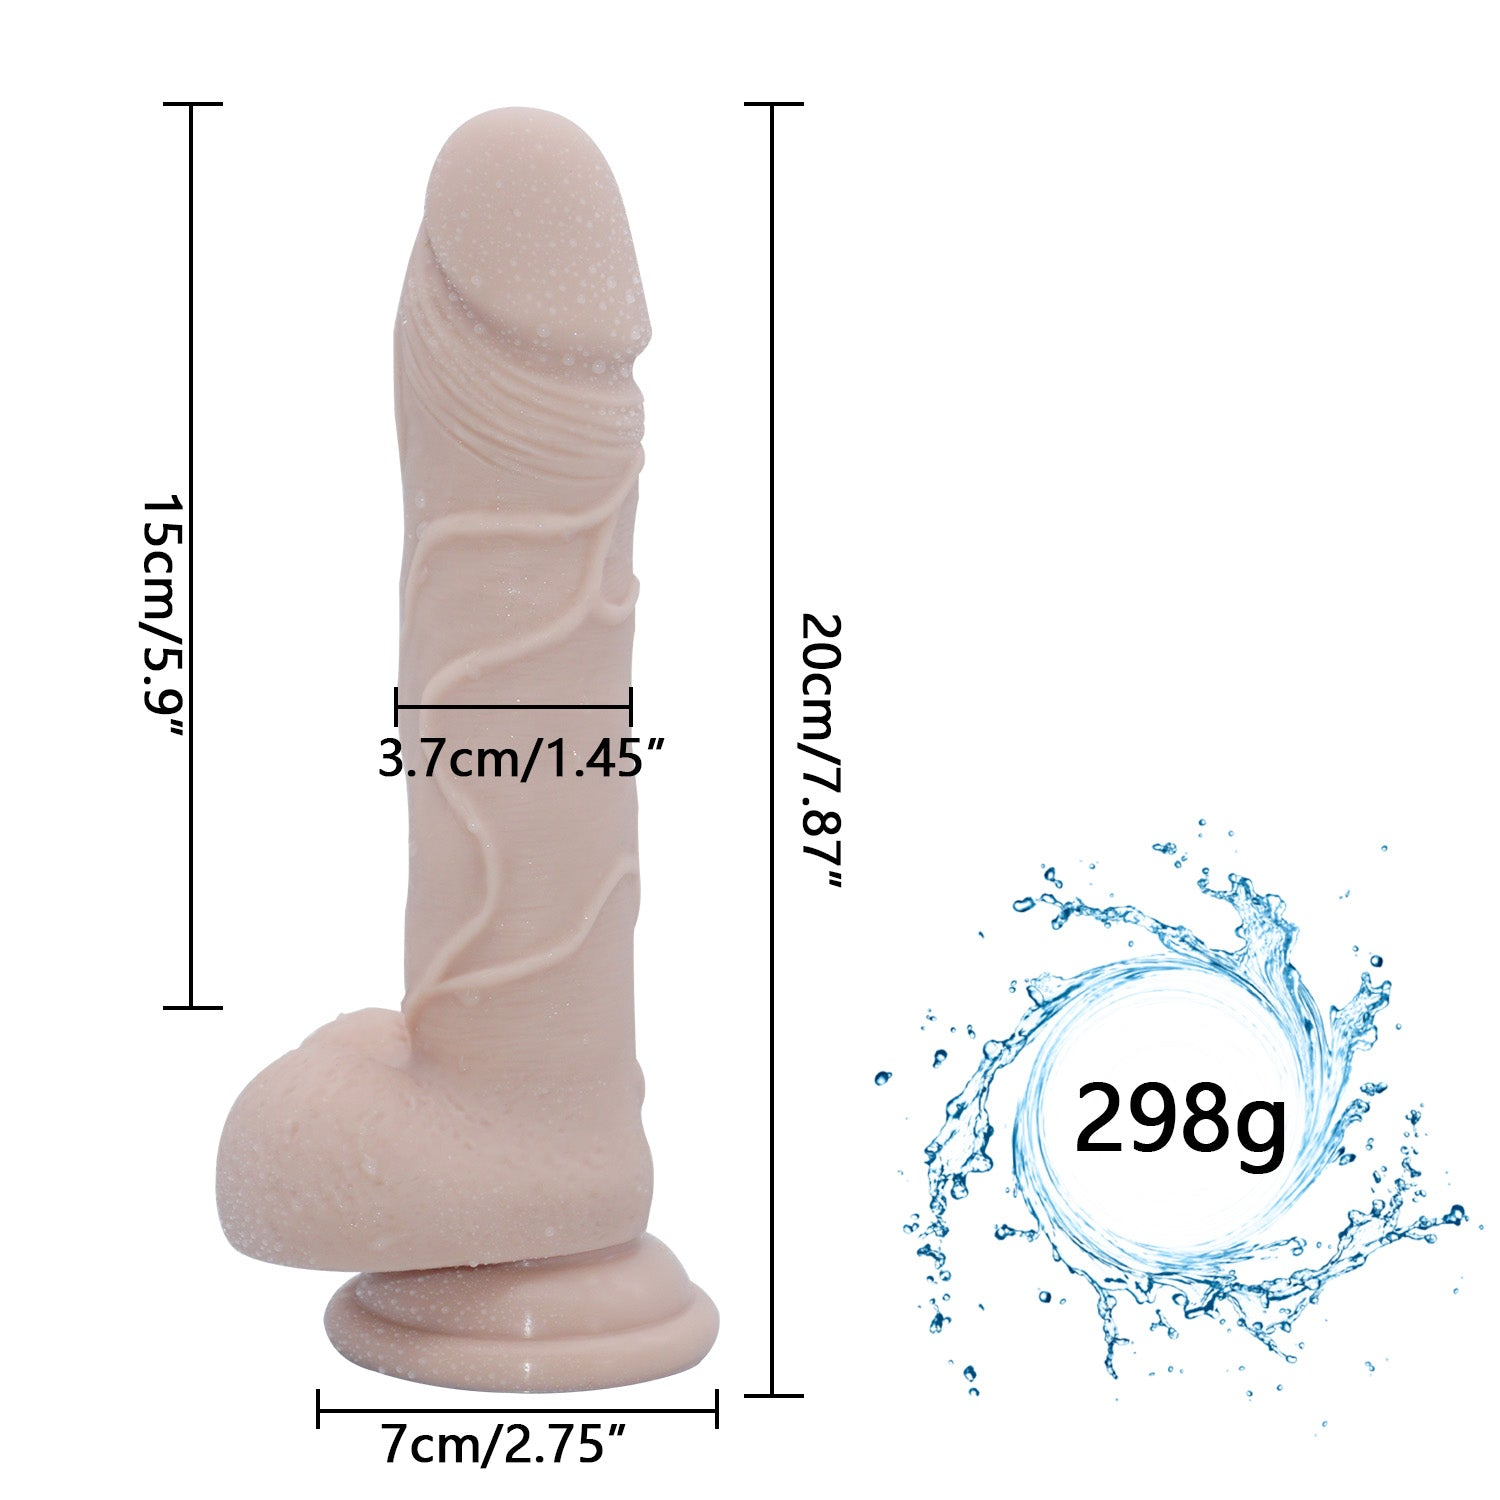 MD 23cm Realistic Dildo Dong Strap on Silicone Penis Cock